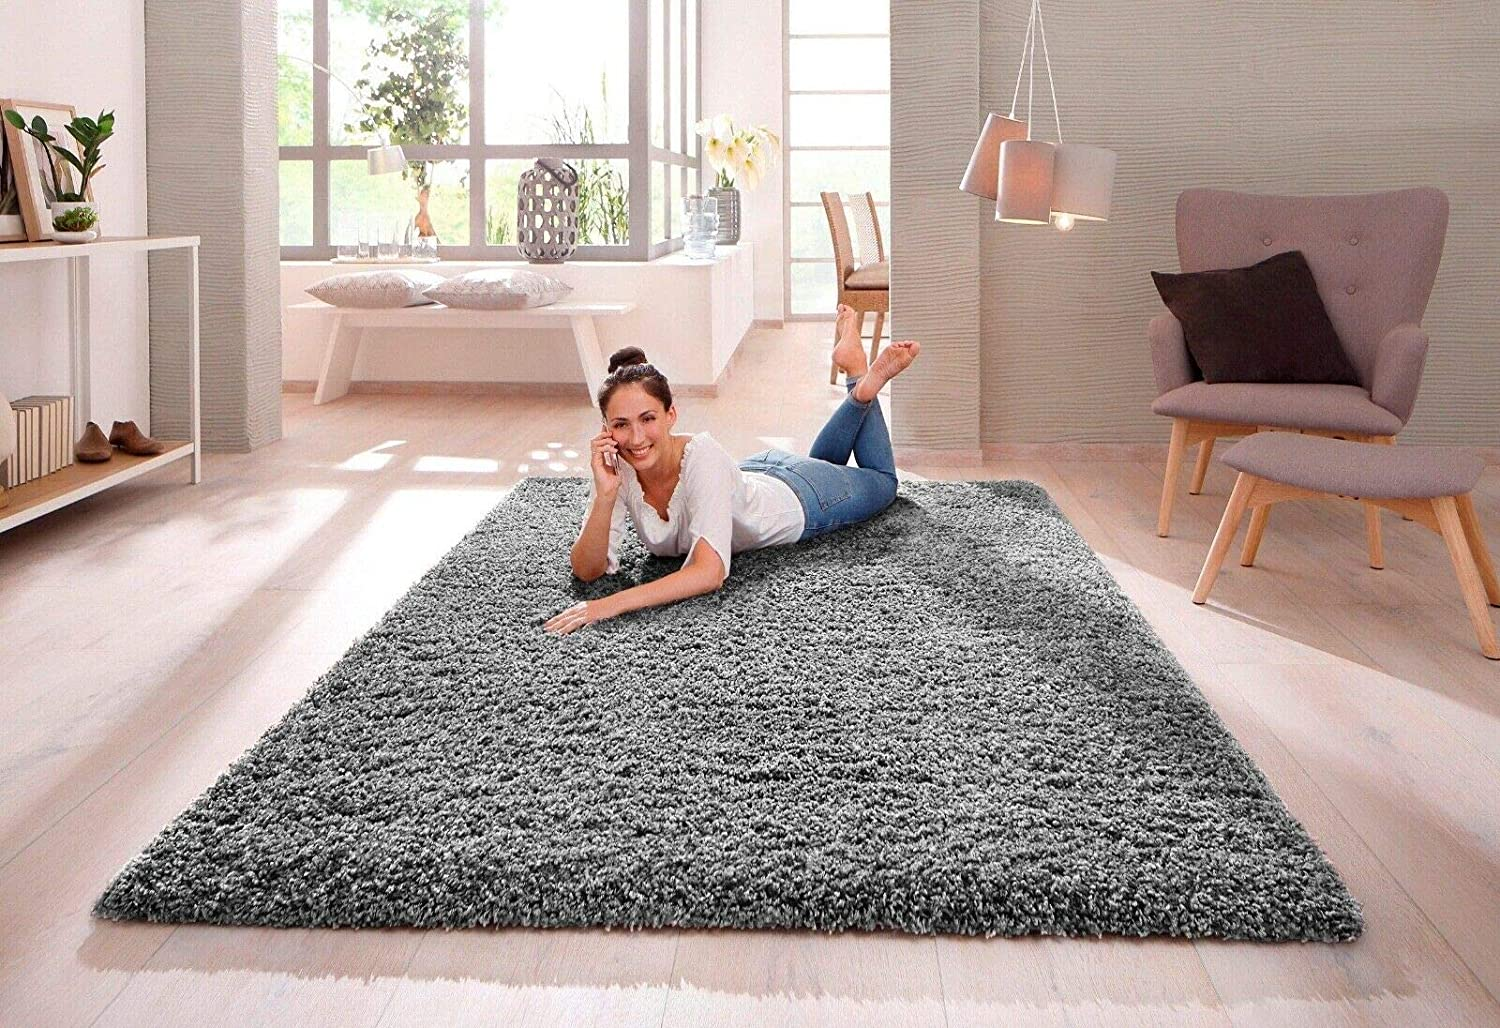 Shaggy Rug 30mm 3cm Modern Rugs Living Room Extra Large Small Medium Rectangular Size Soft Touch Thick Pile Living Room Area Rugs Non Shedding Grey 160cm X 230cm 5 5ft X 7 5ft